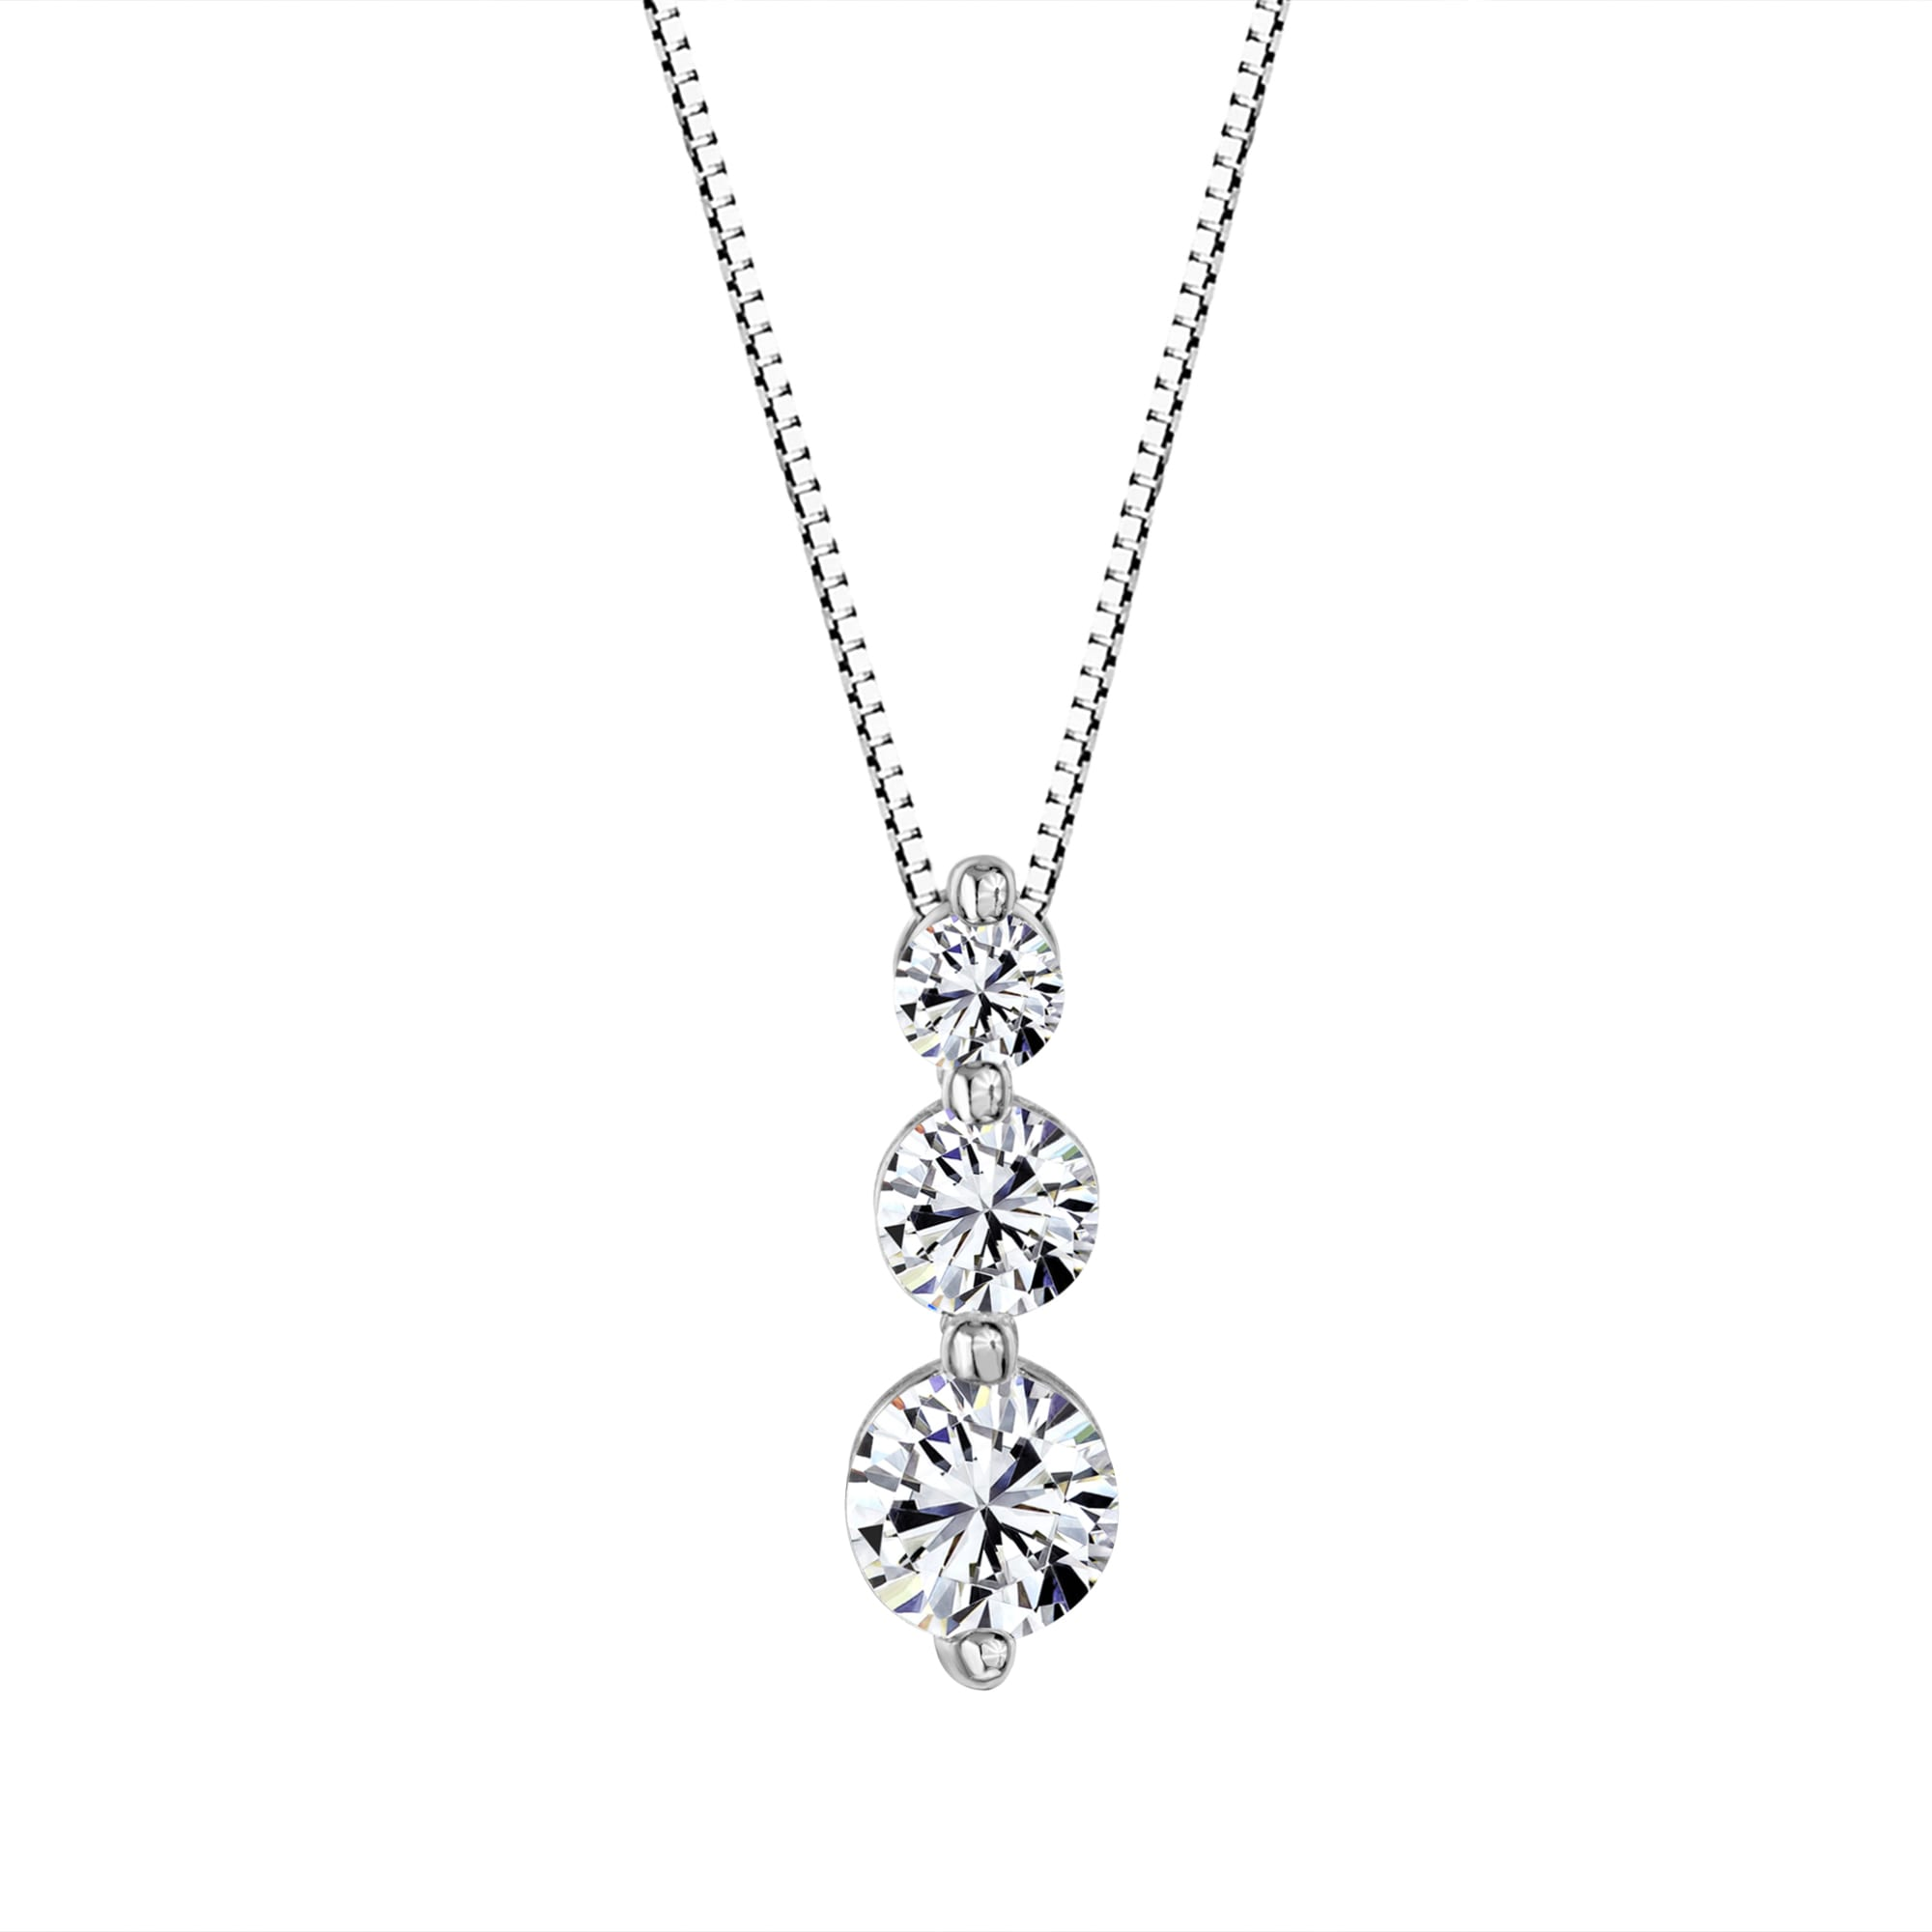 diamond gold caresse white cartier dorchid free necklace es d pendant product overstock jewelry onyx round today shipping and orchid watches